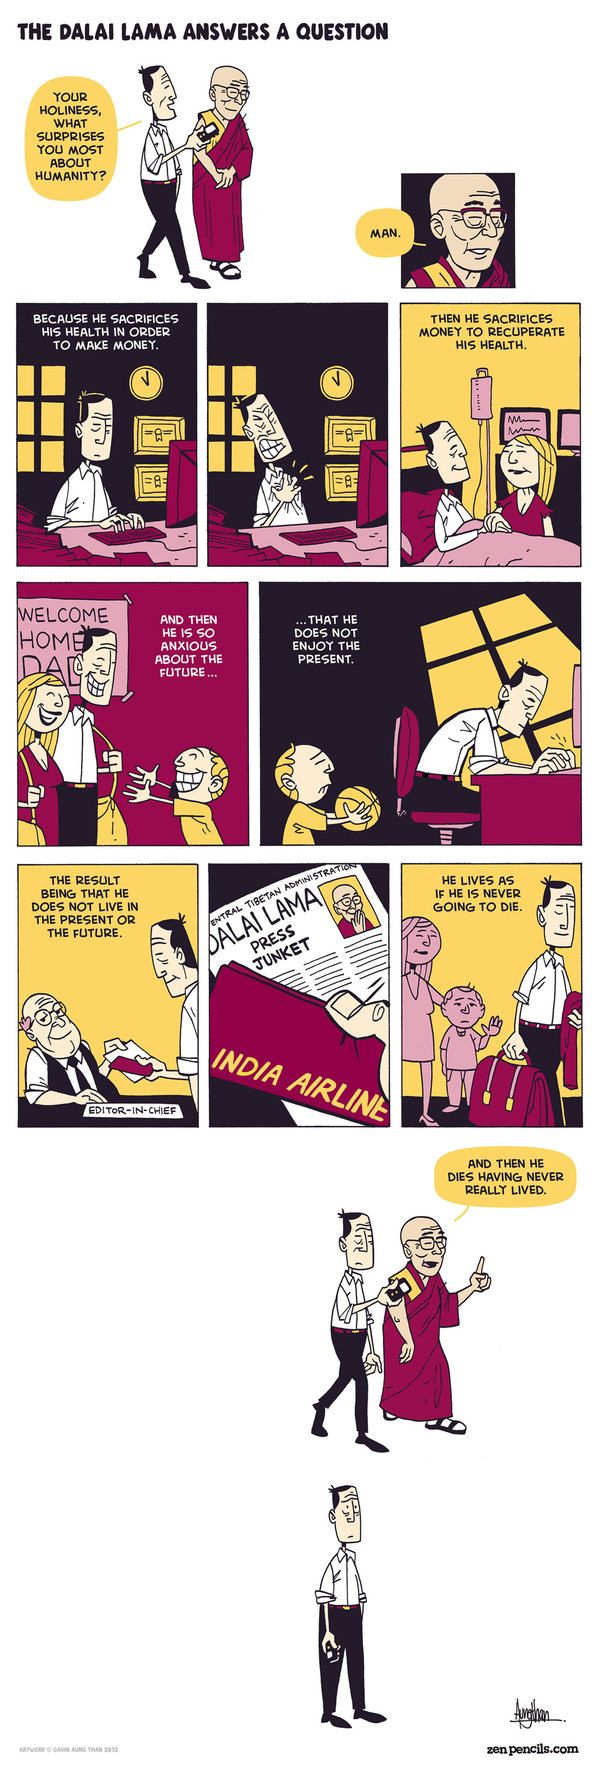 Love Zen Pencils, very insightful comics most of the time. This one is no exception.